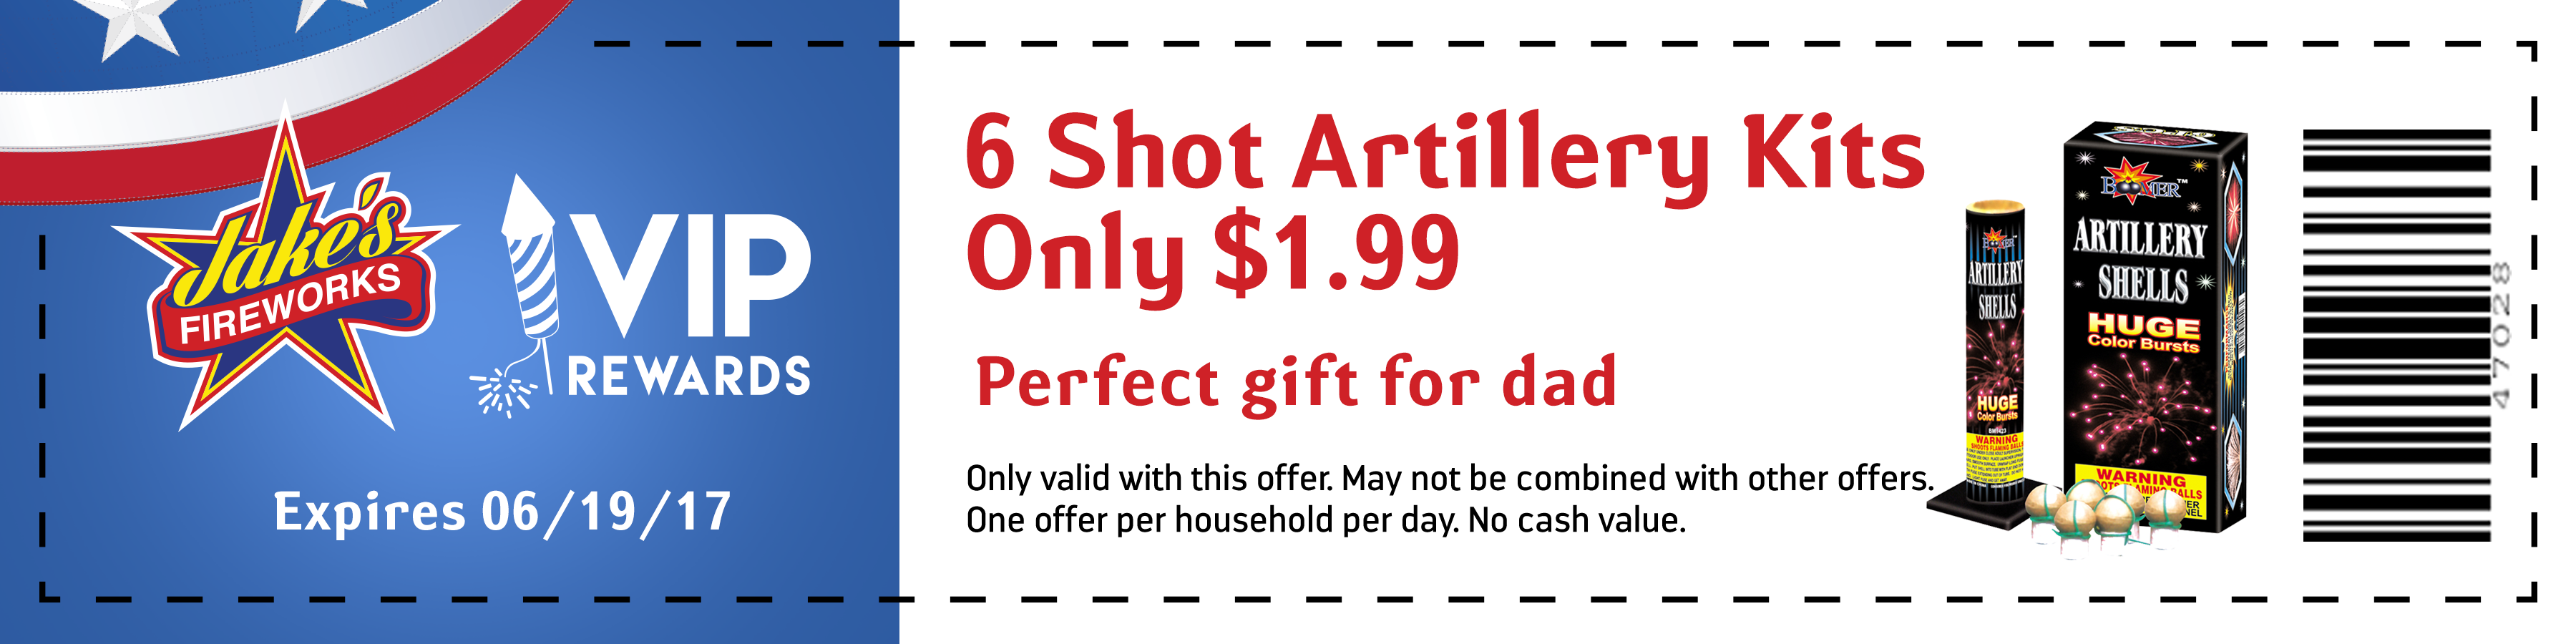 6 shot artillery firework coupon